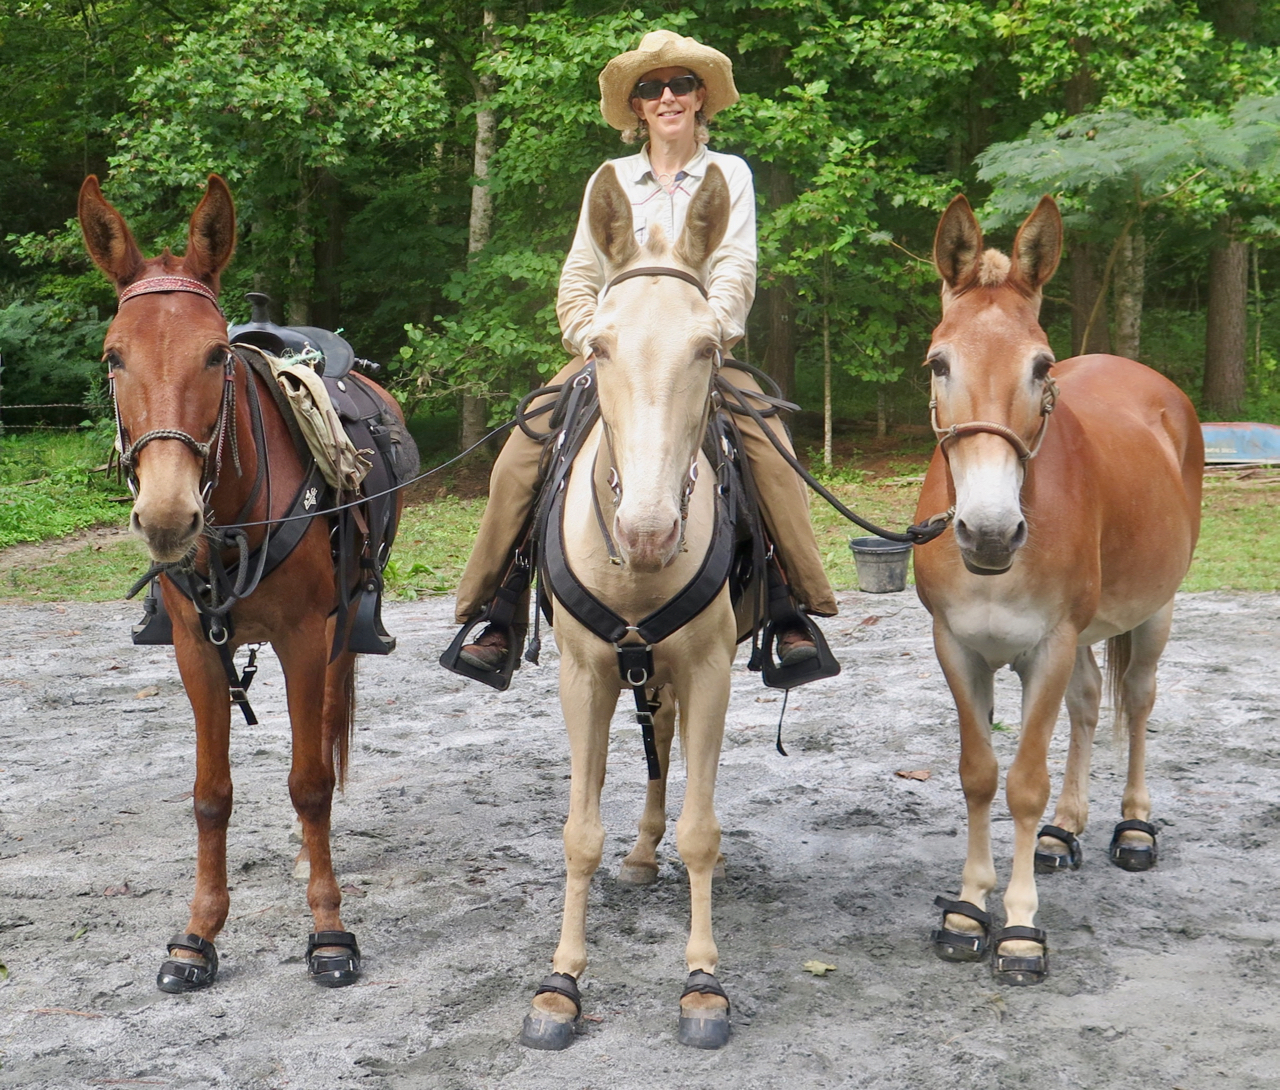 bernie harberts riverearth.com horse mule trailride long distance riding ride out the front gate lost sea expedition